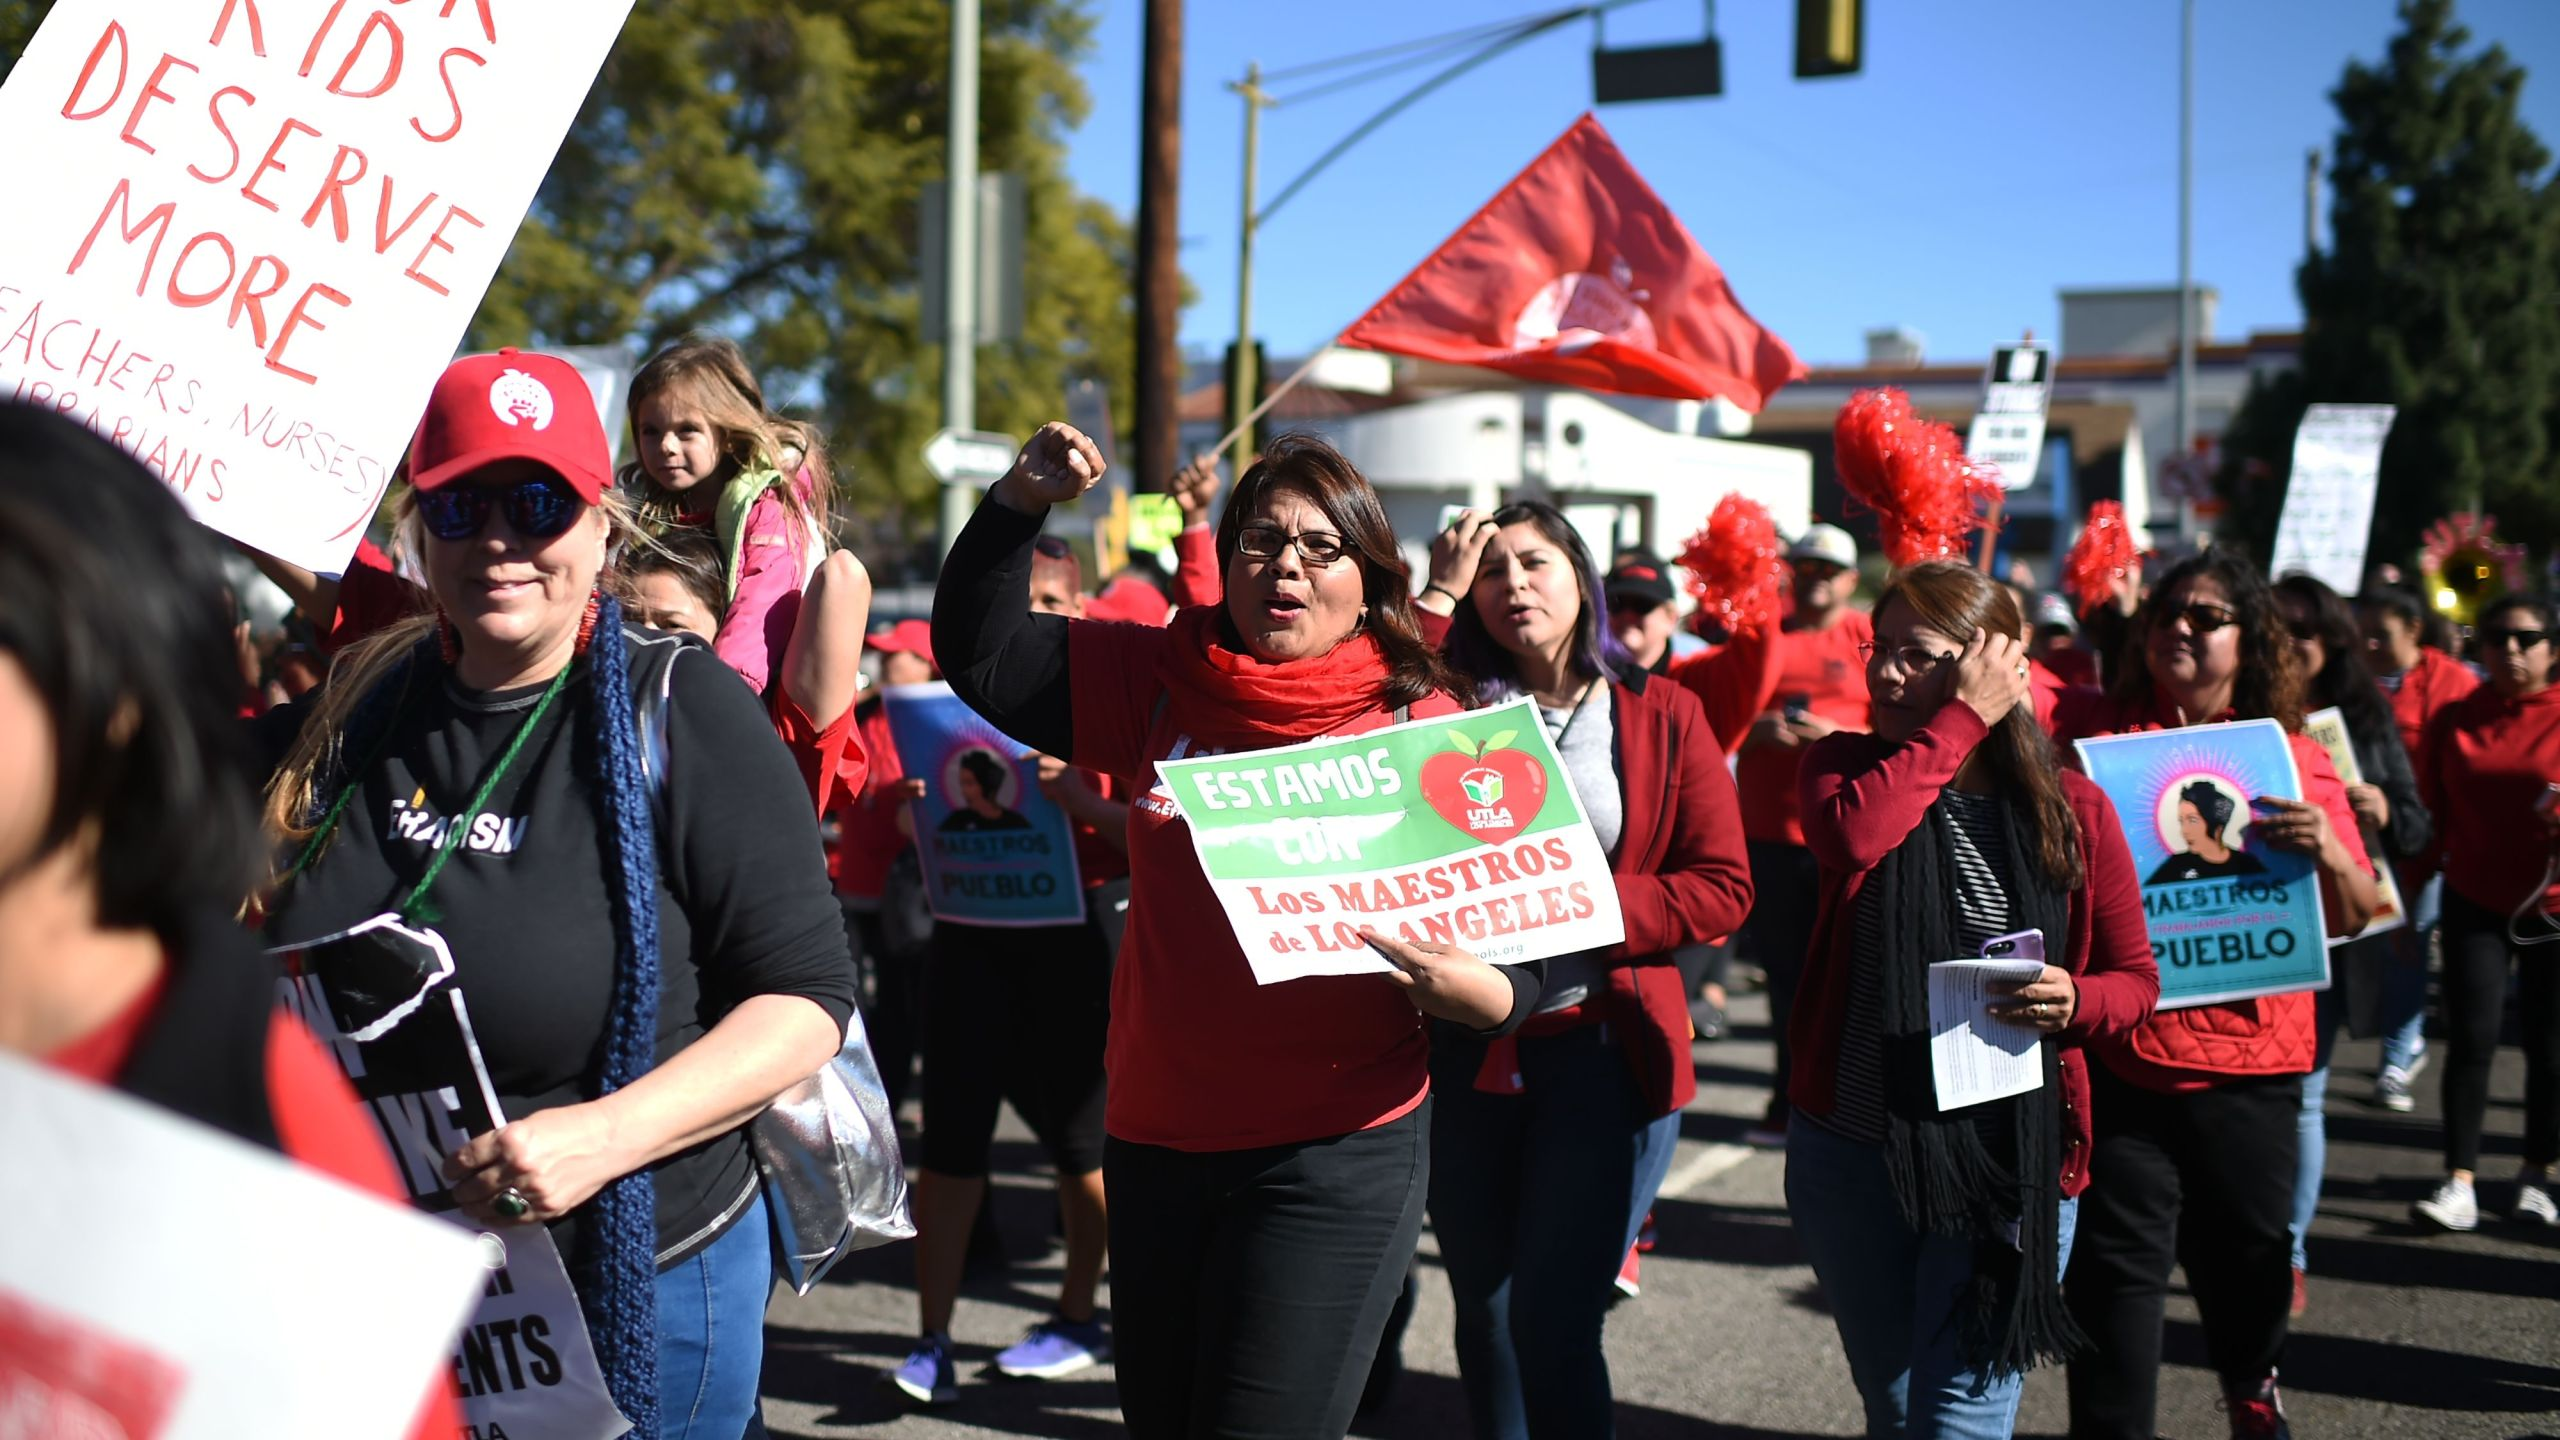 Striking public school teachers and their supporters march during the 34th annual Kingdom Day Parade on Martin Luther King Jr. Day on Jan. 21, 2019. (Credit: Robyn Beck / AFP/Getty Images)